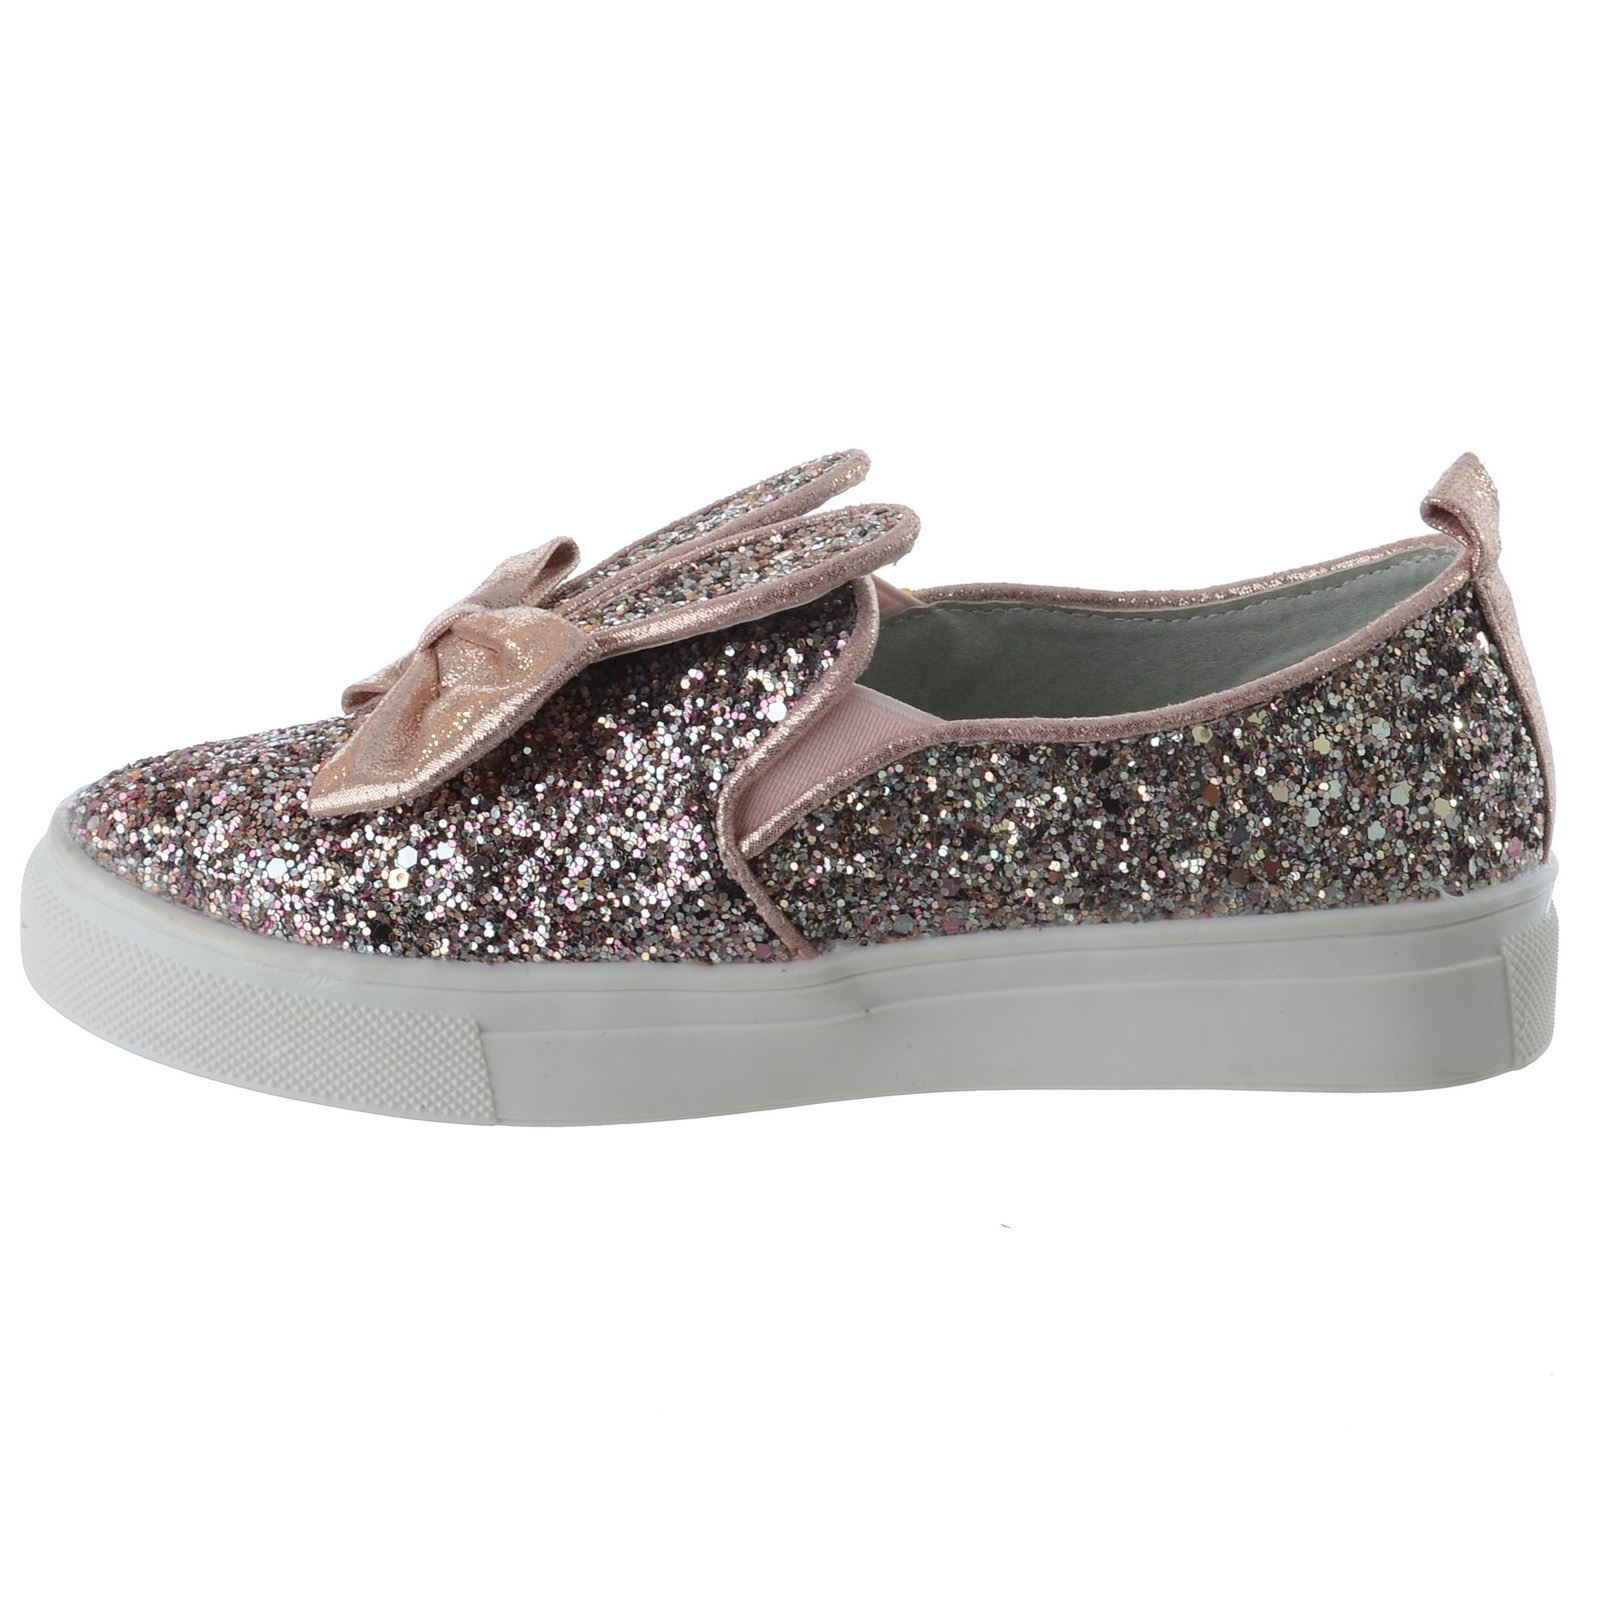 GIRLS KIDS GLITTER SKATER PUMPS PLIMSOLLS TRAINERS CHILDRENS PARTY SHOES SIZE